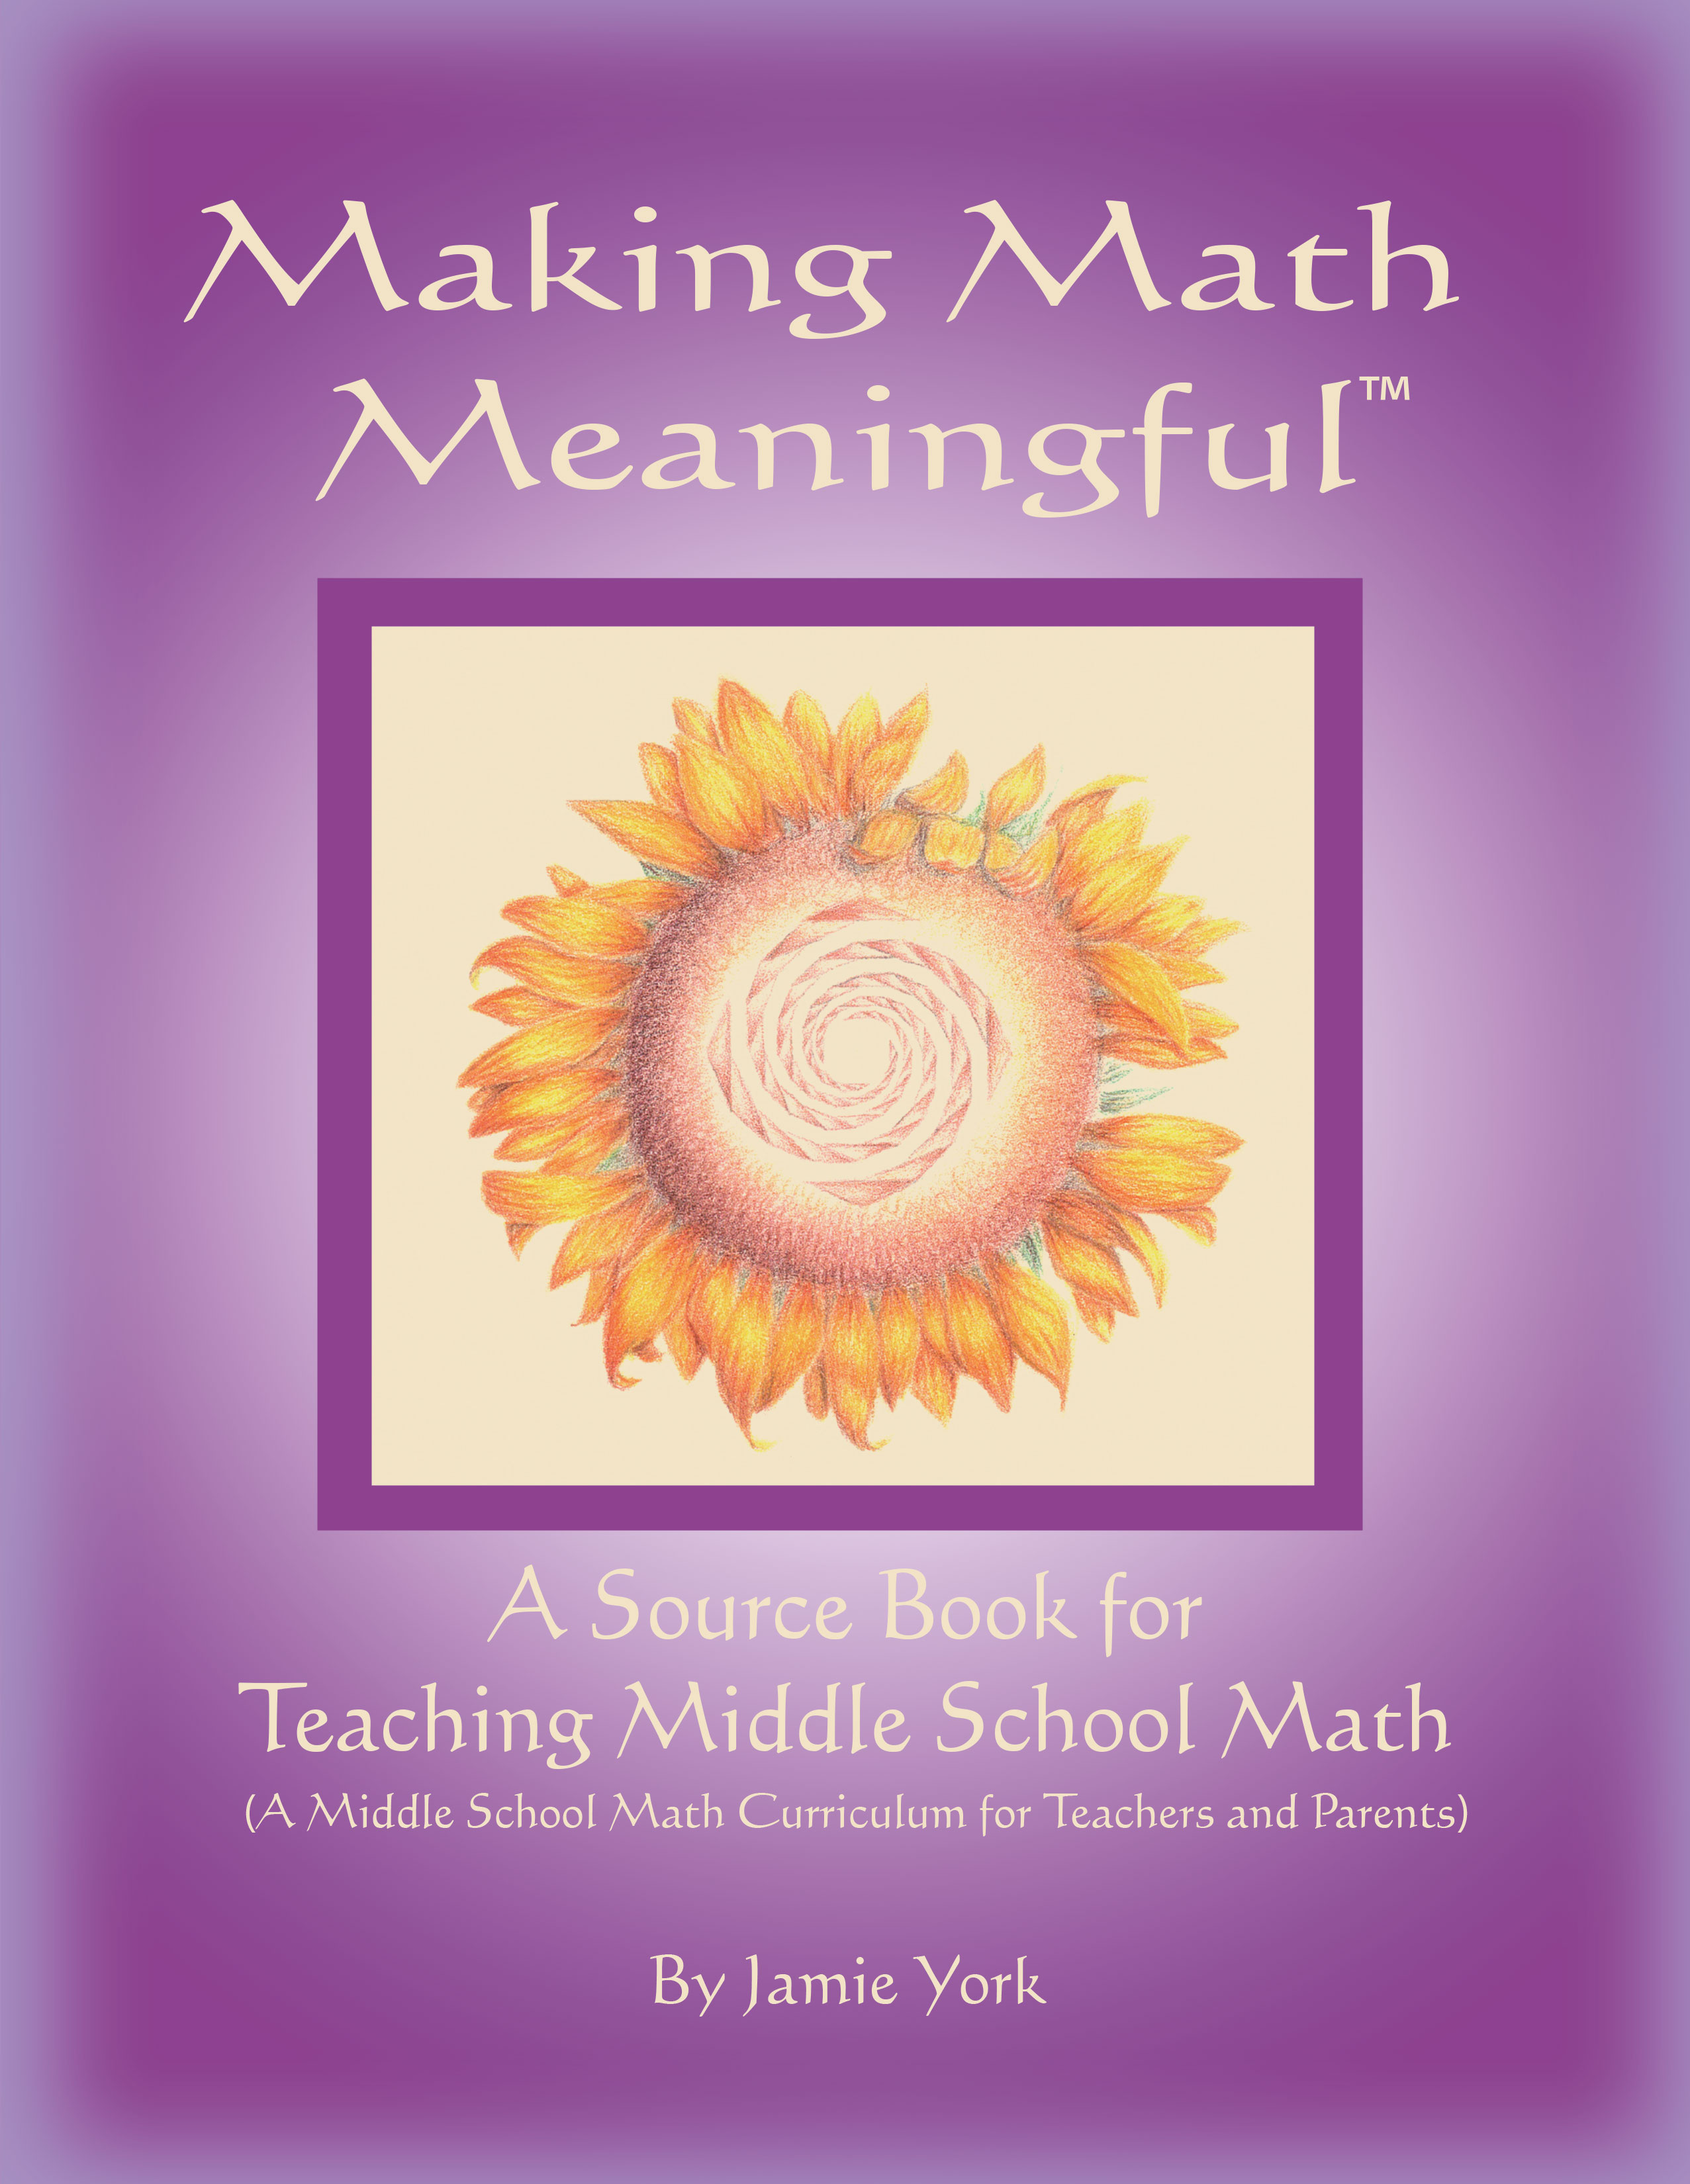 Why Parents Need To Teach Middle >> Source Book For Teaching Middle School Math Jamie York Press